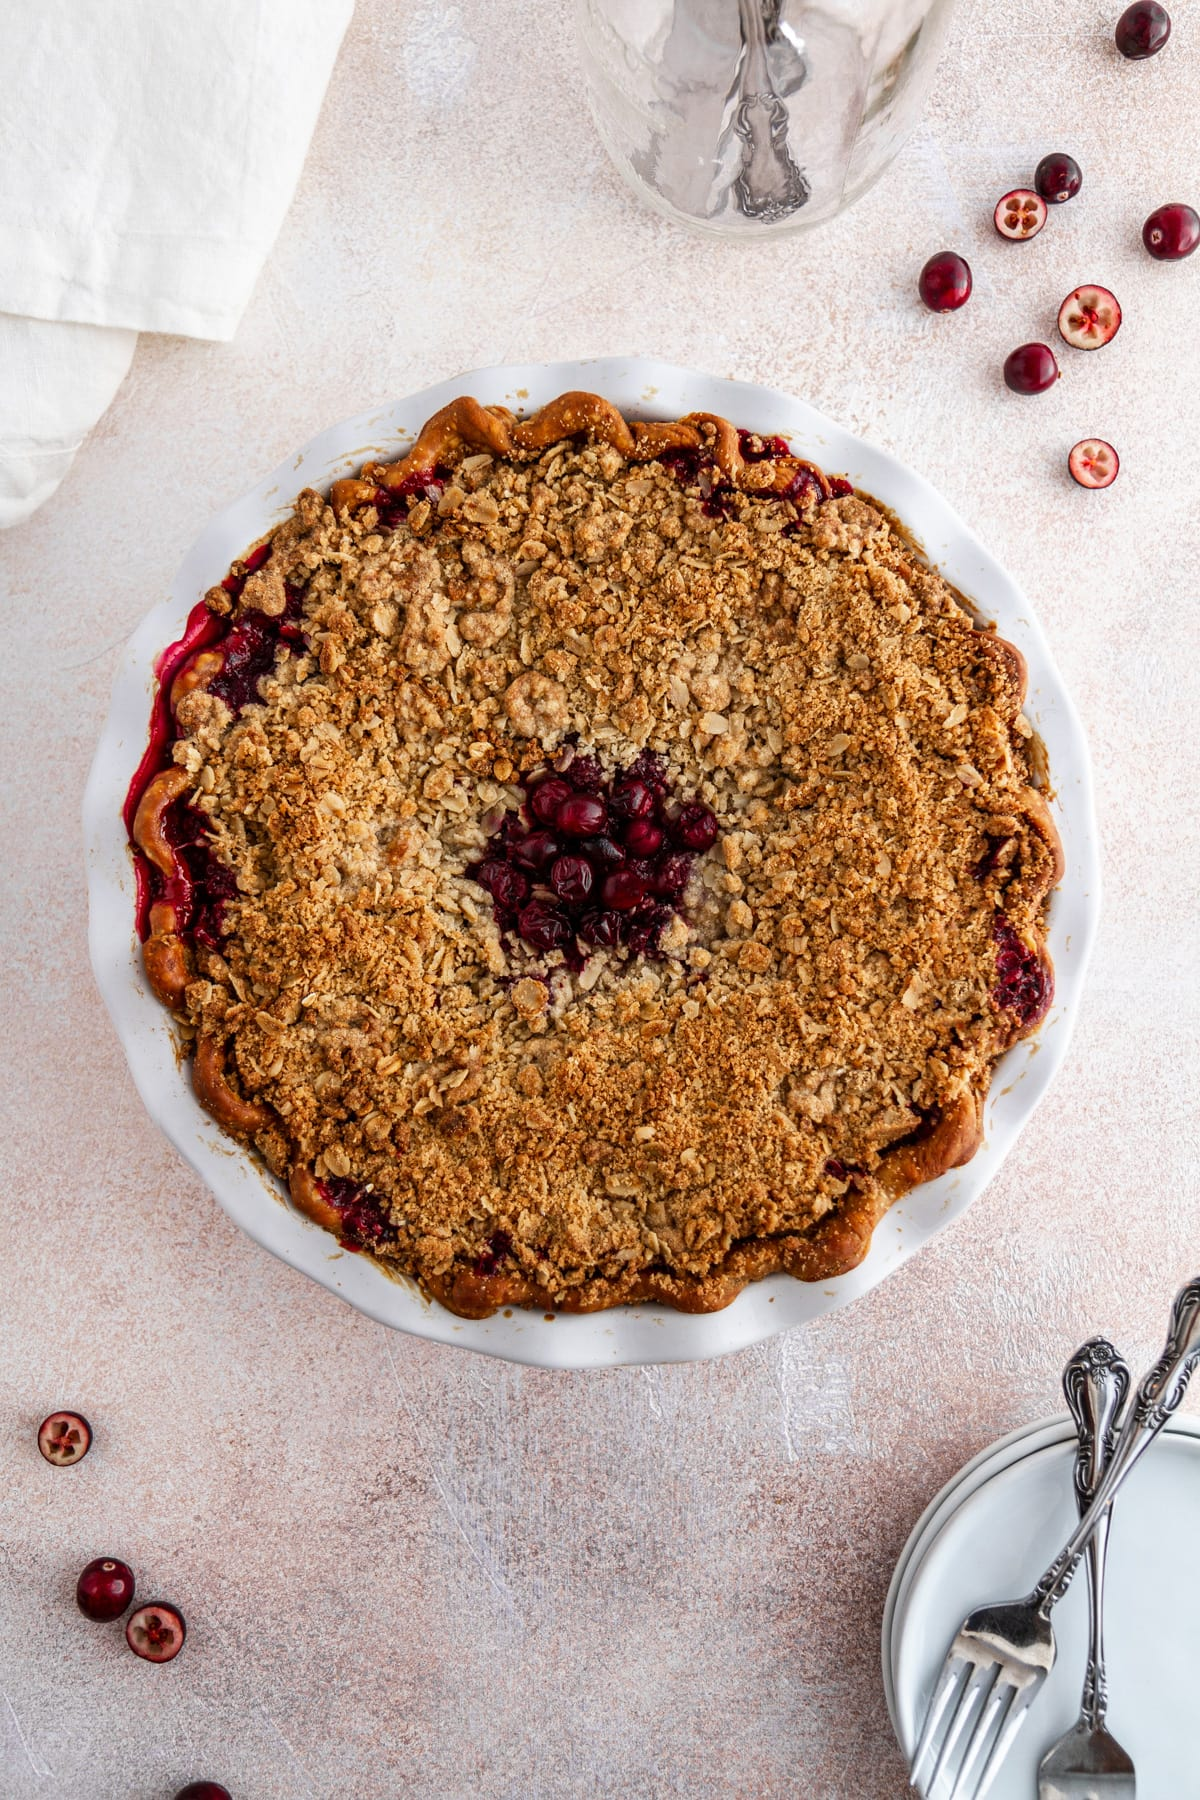 cranberry crumble pie on a surface